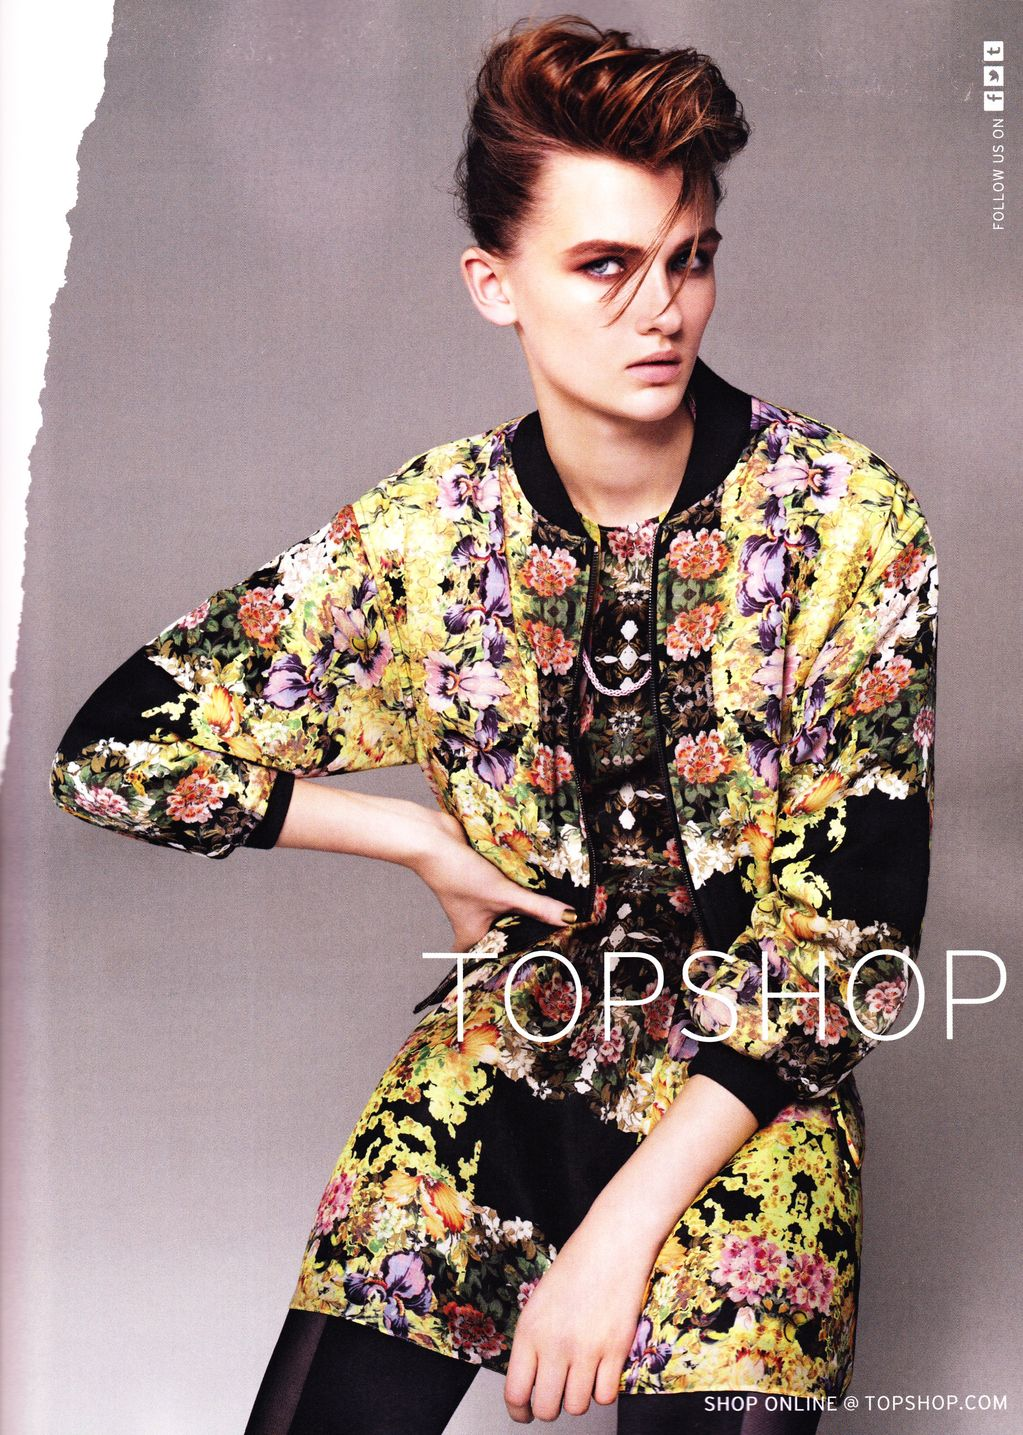 top shop Topshop has become a major style authority and one of fashion's biggest  success stories.